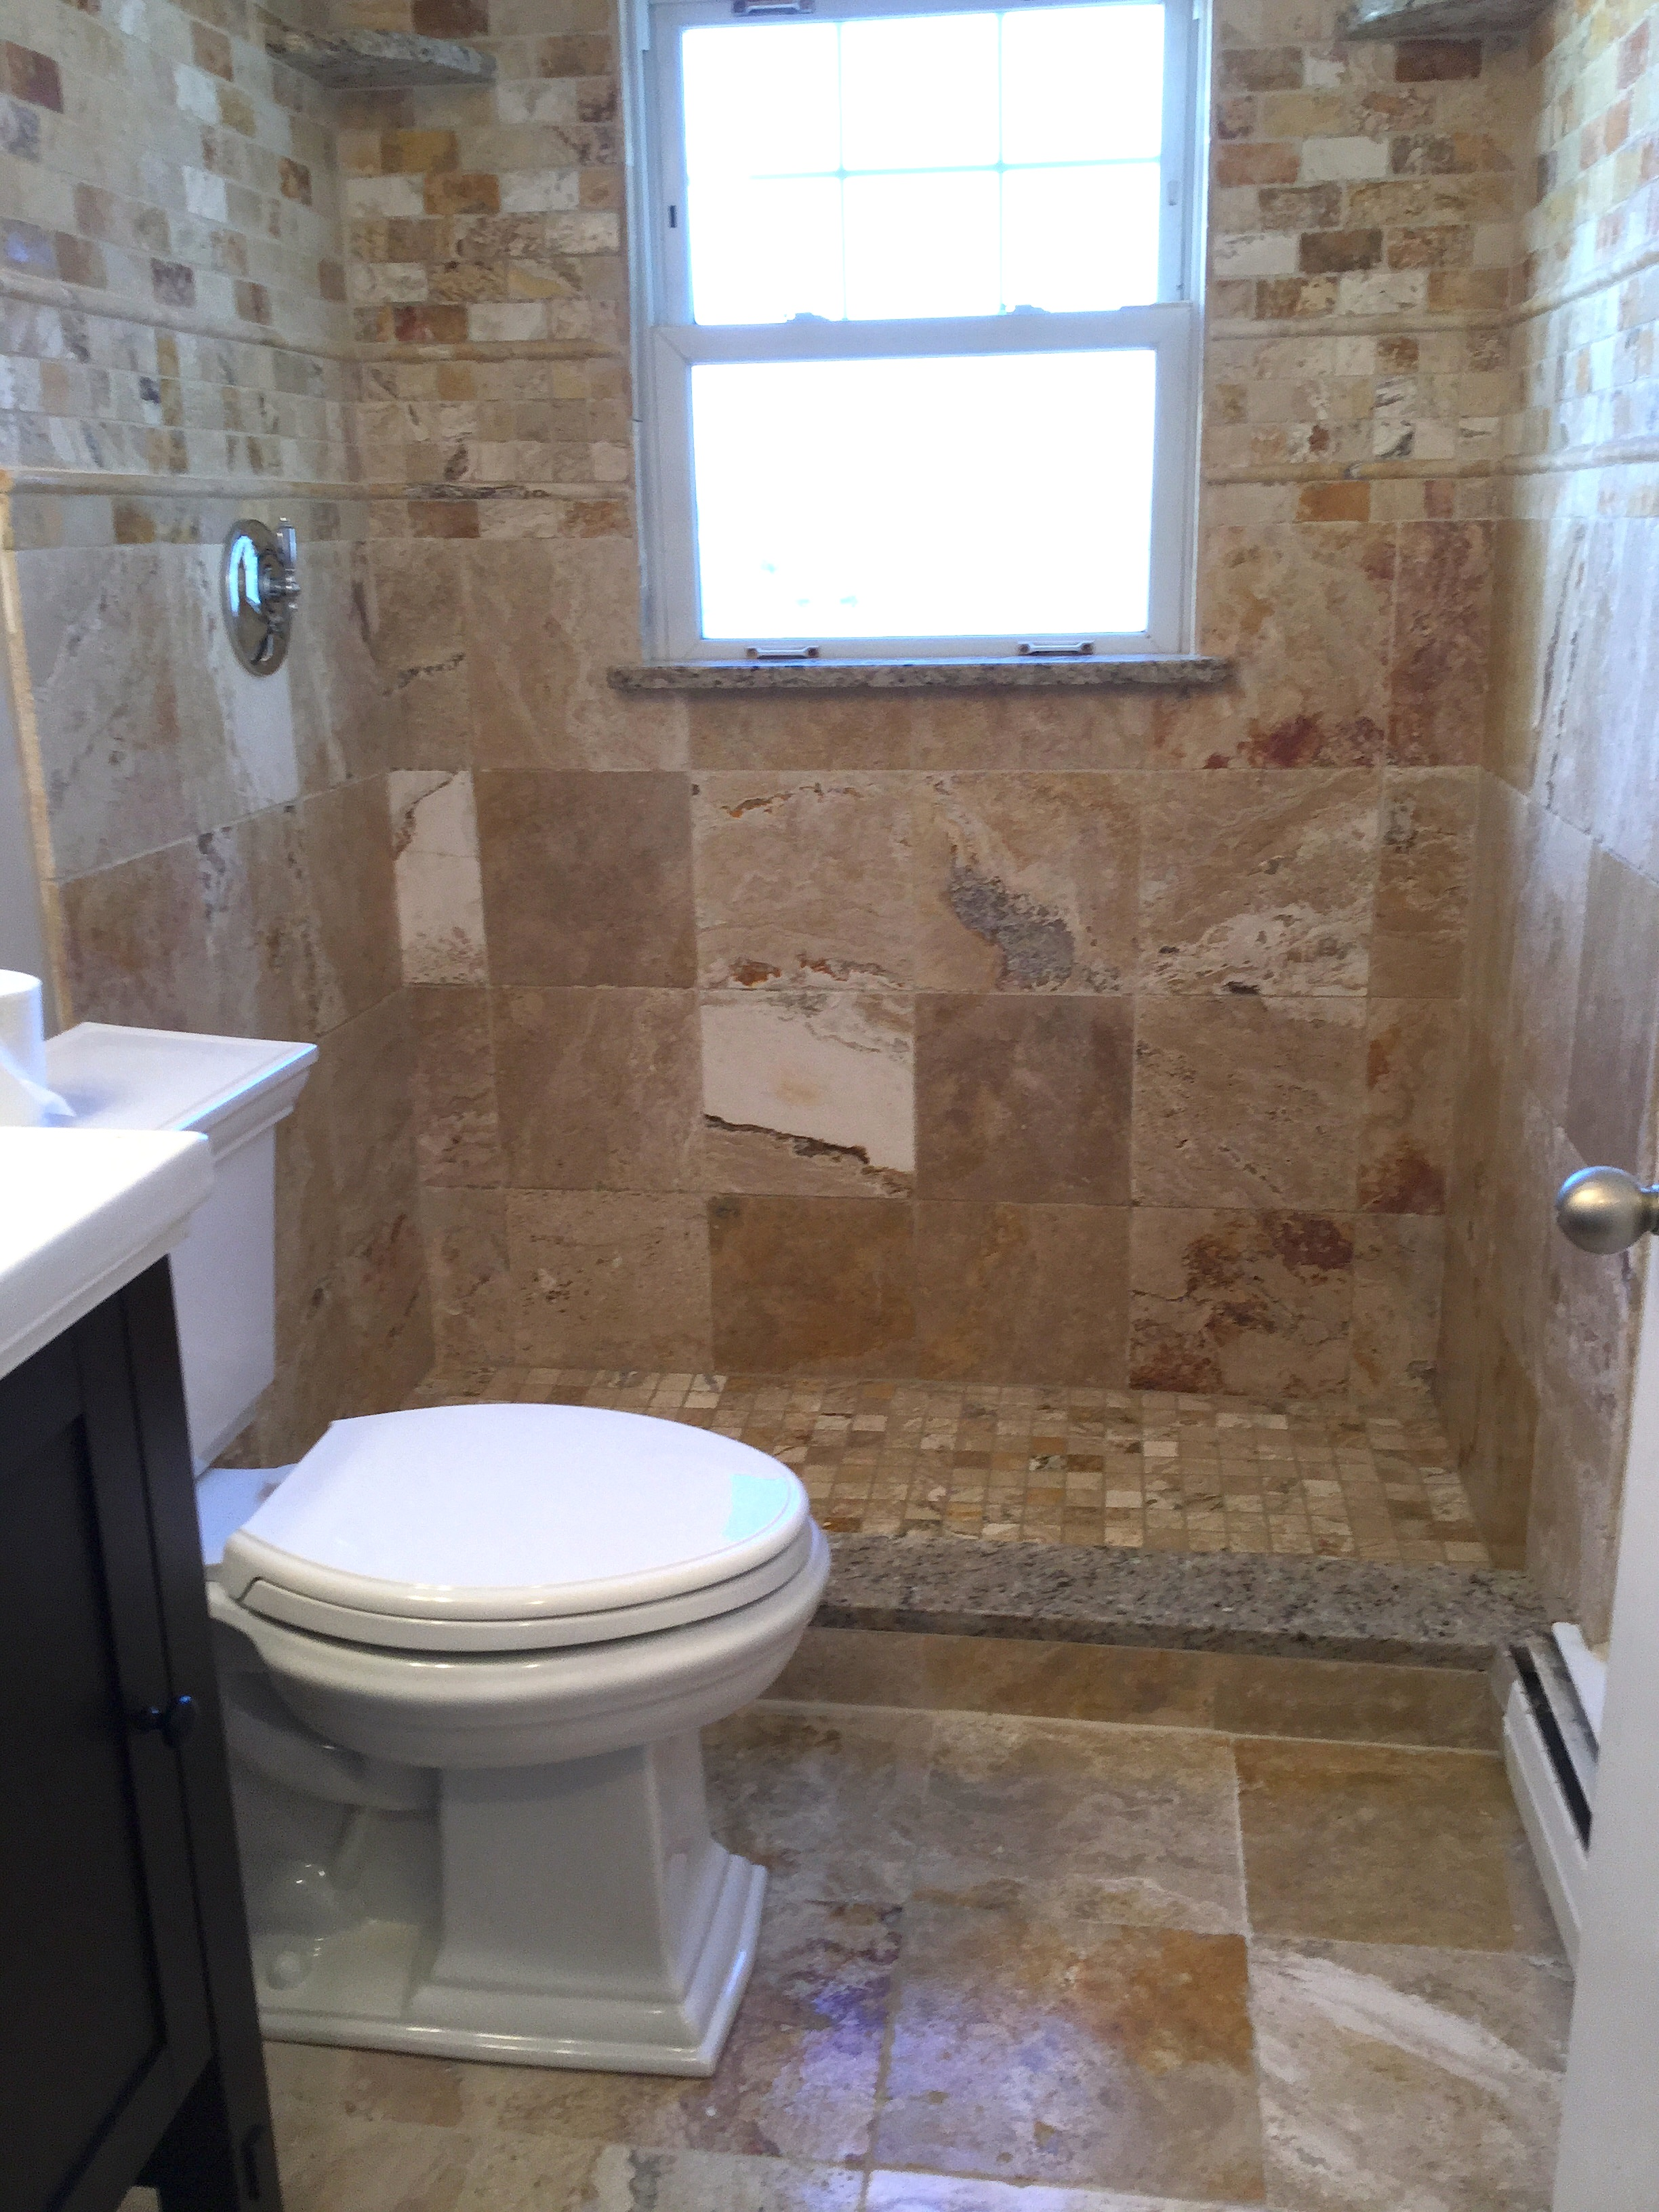 services bathrooms by design bathroom renovation remodeling complete bath remodel with tub to a shower conversion stone look different sizes of tile with granite step over shelves and matching window sill